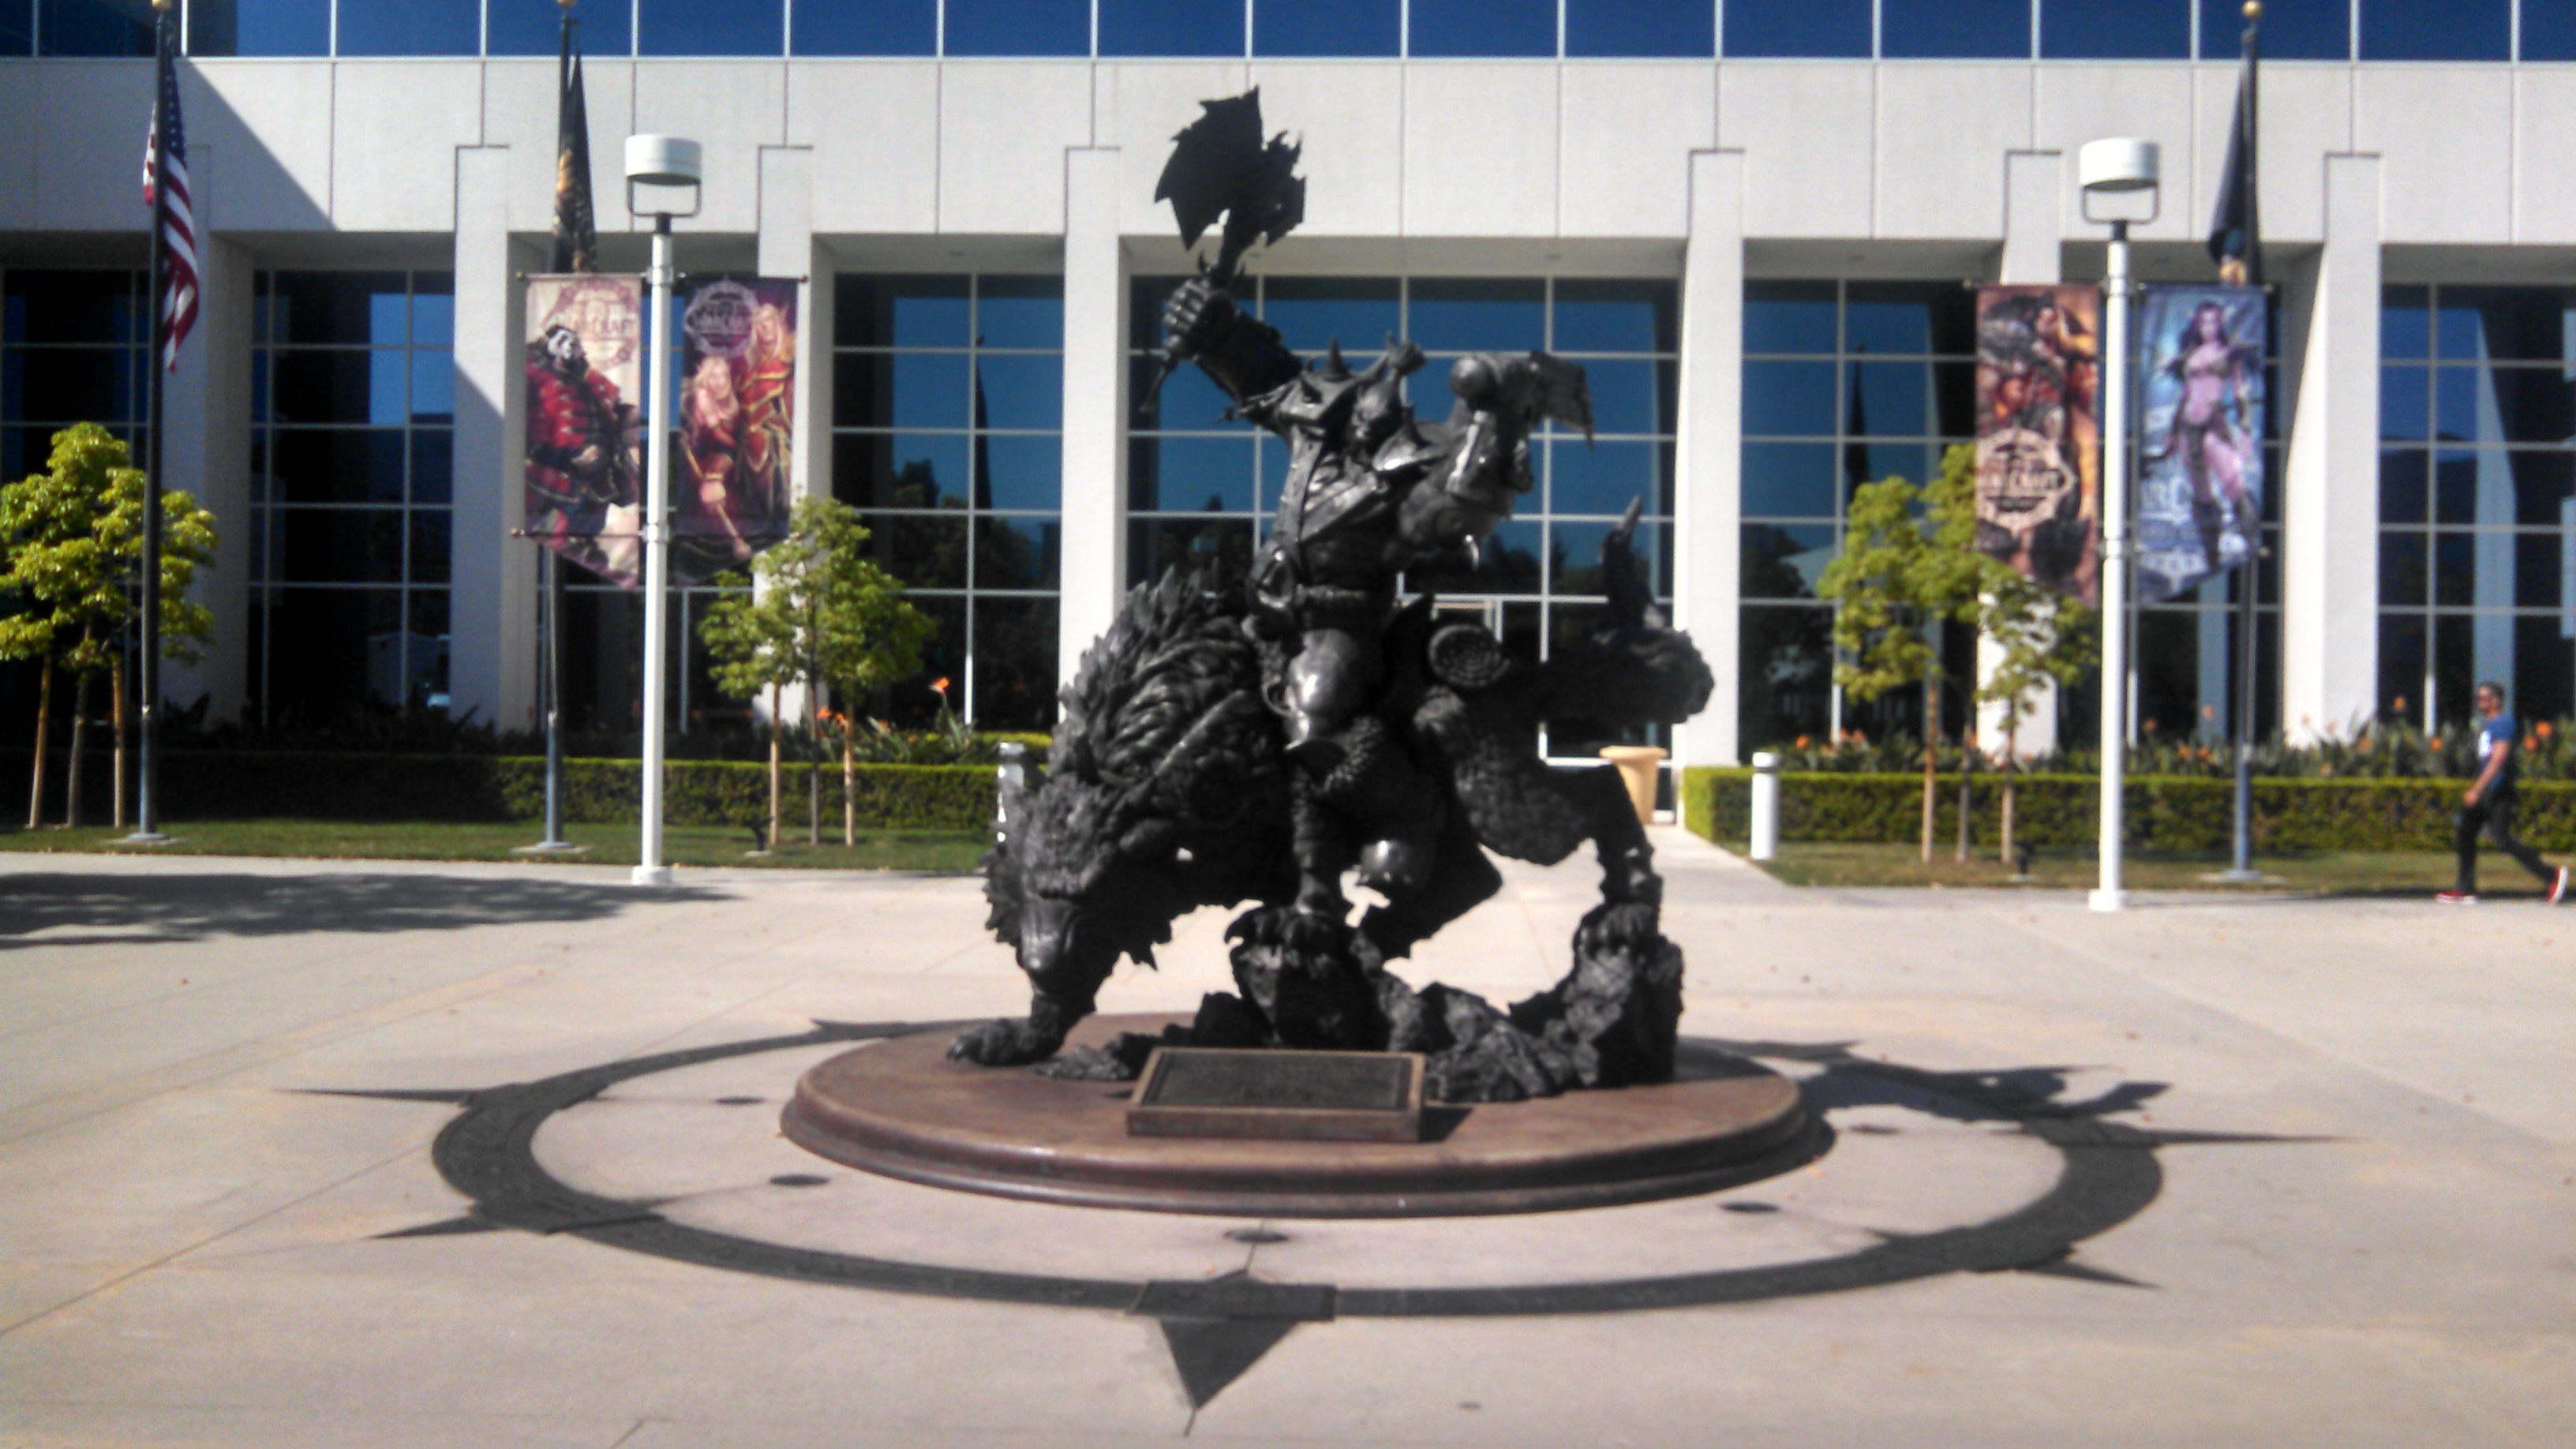 An orc rider guards the door at BlizzCon headquarters, surrounded by a compass rose of the company's core values.